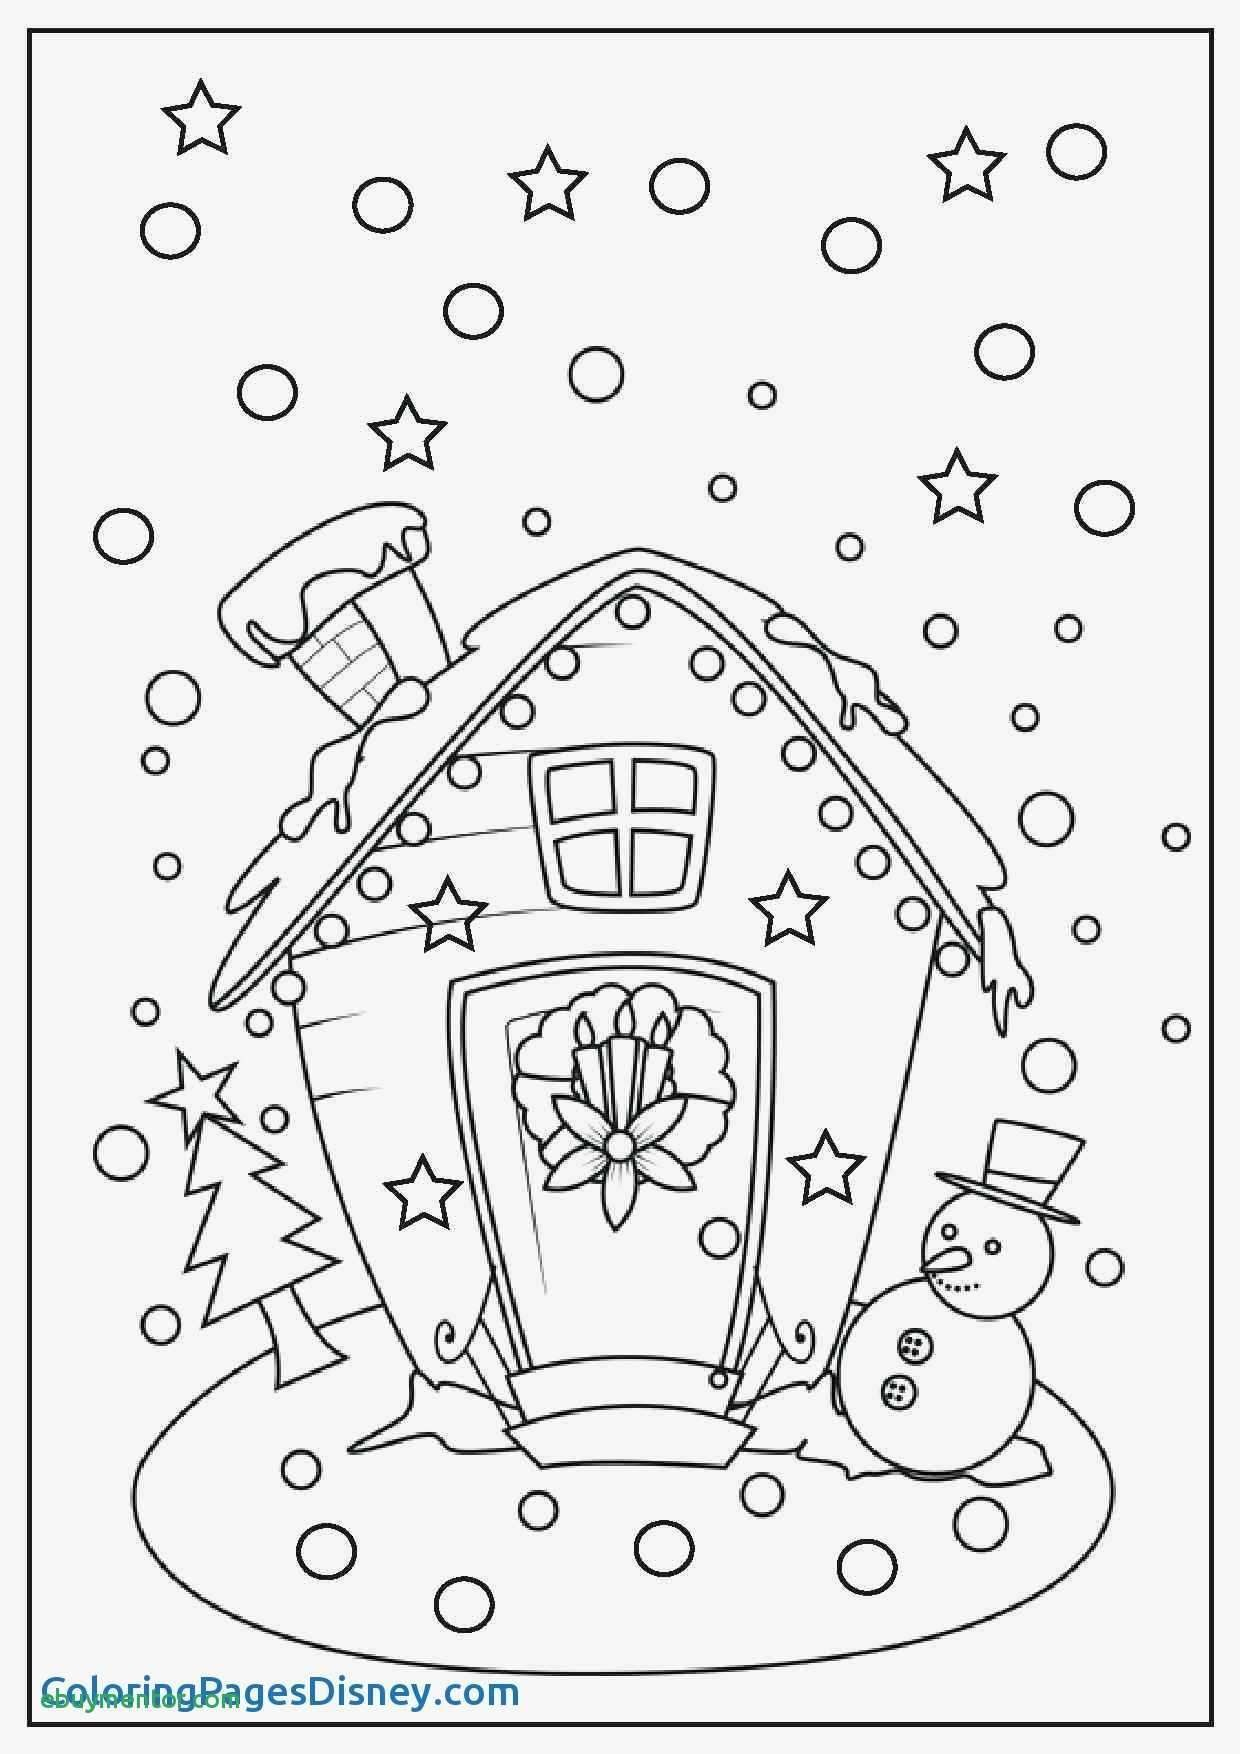 Christmas Coloring Pages And Word Searches With Free Printable Activities For 6 Year Olds Lovely